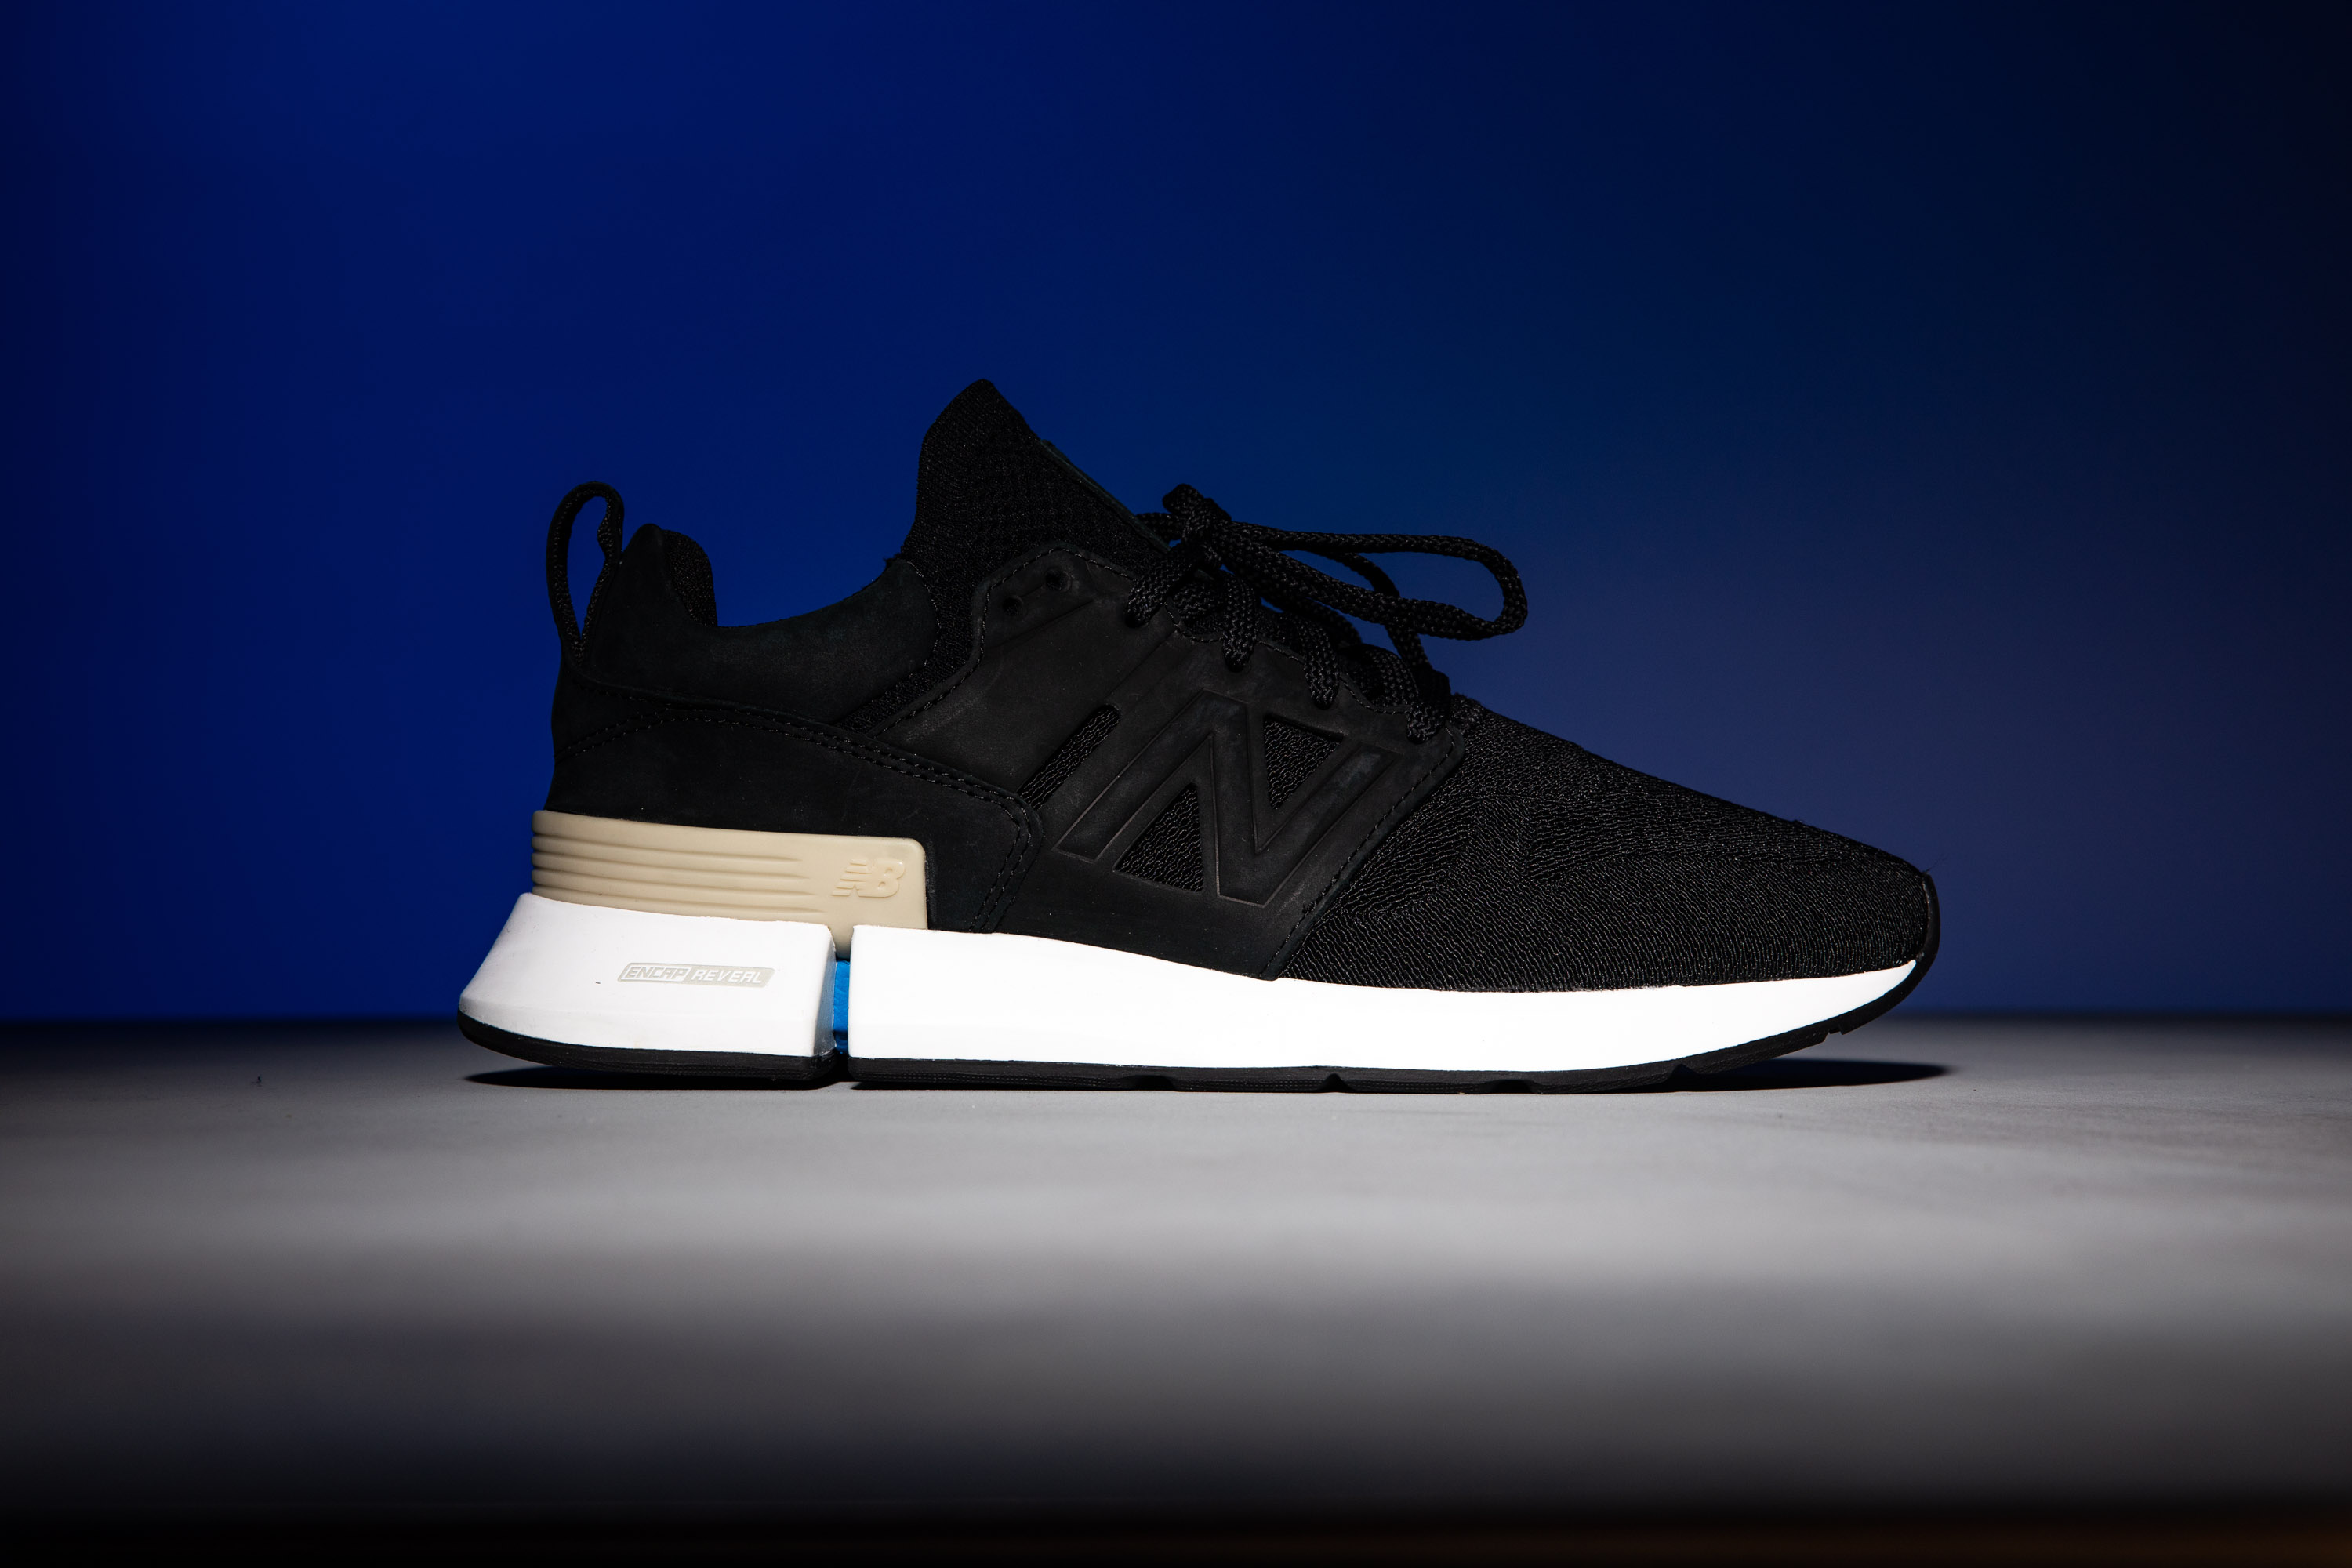 premium selection 4aa92 76228 New Balance and Tokyo Design Studio built up a unique sneaker they launched  during the New York Marathon under the RC-1 name.